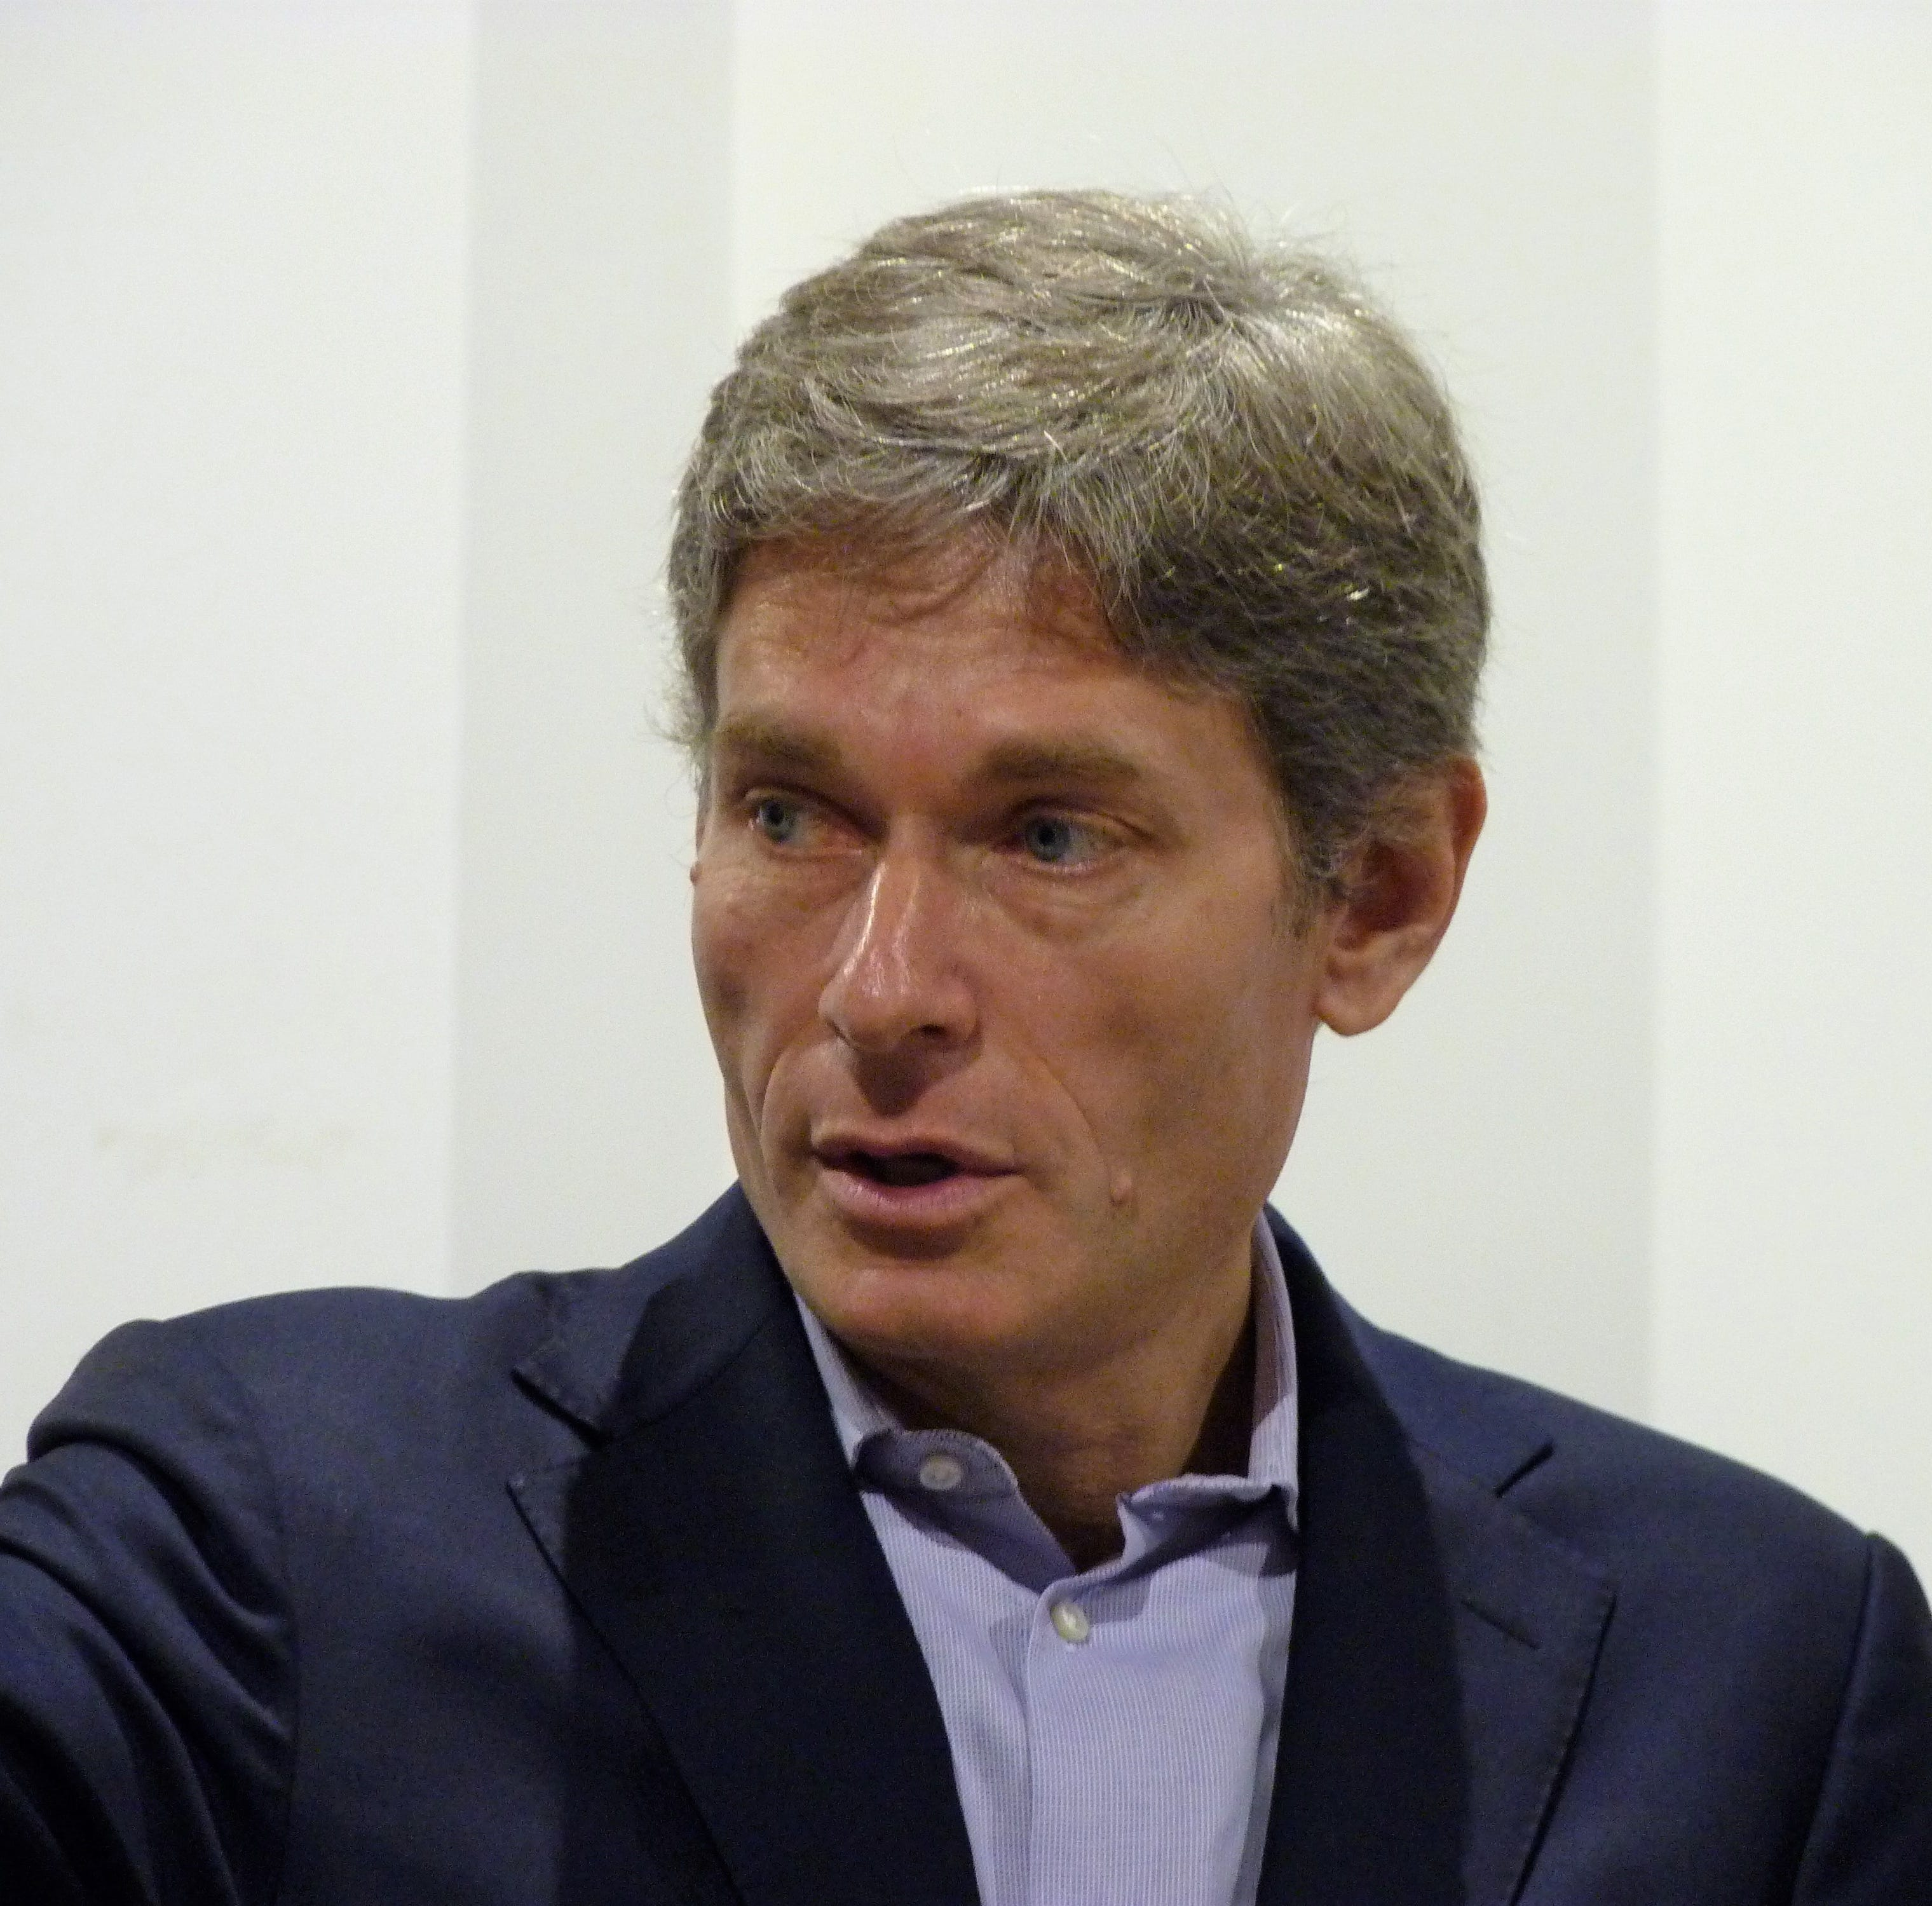 District 7 Congressman-elect Tom Malinowski stresses bipartisanship at Somerville event